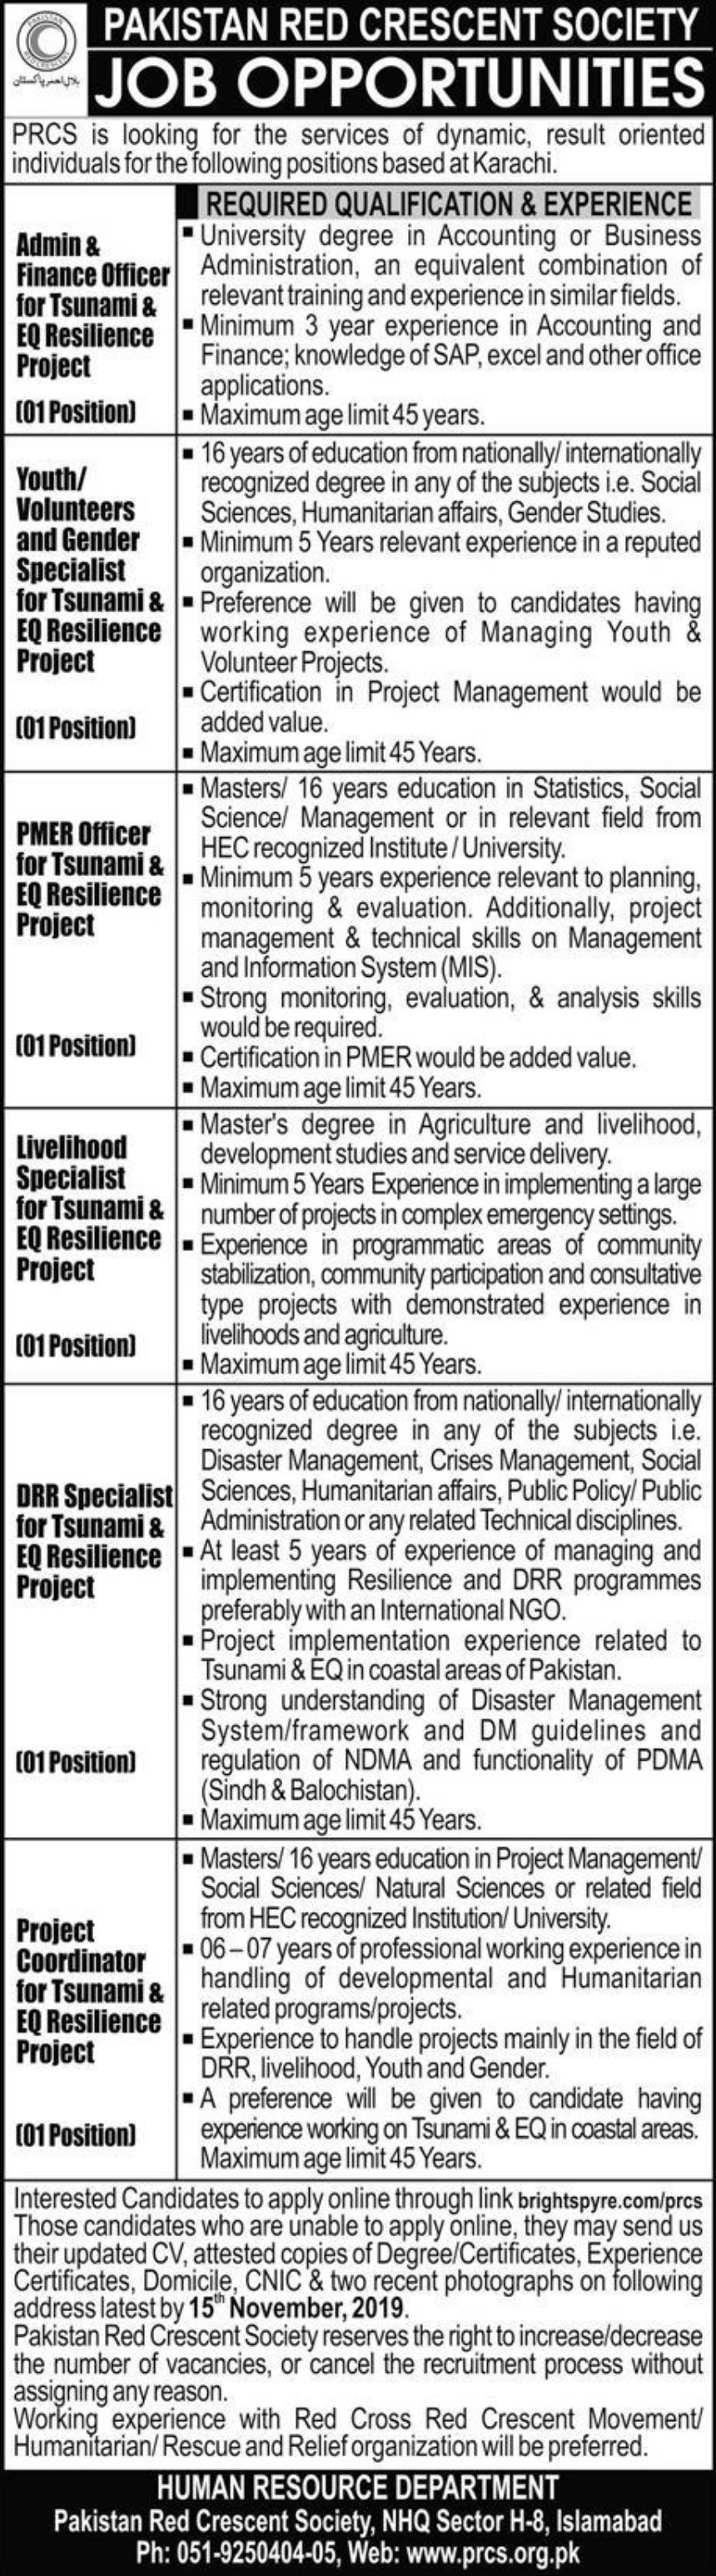 Pakistan Red Crescent Society PRCS Jobs 2019 KarachiPakistan Red Crescent Society PRCS Jobs 2019 Karachi